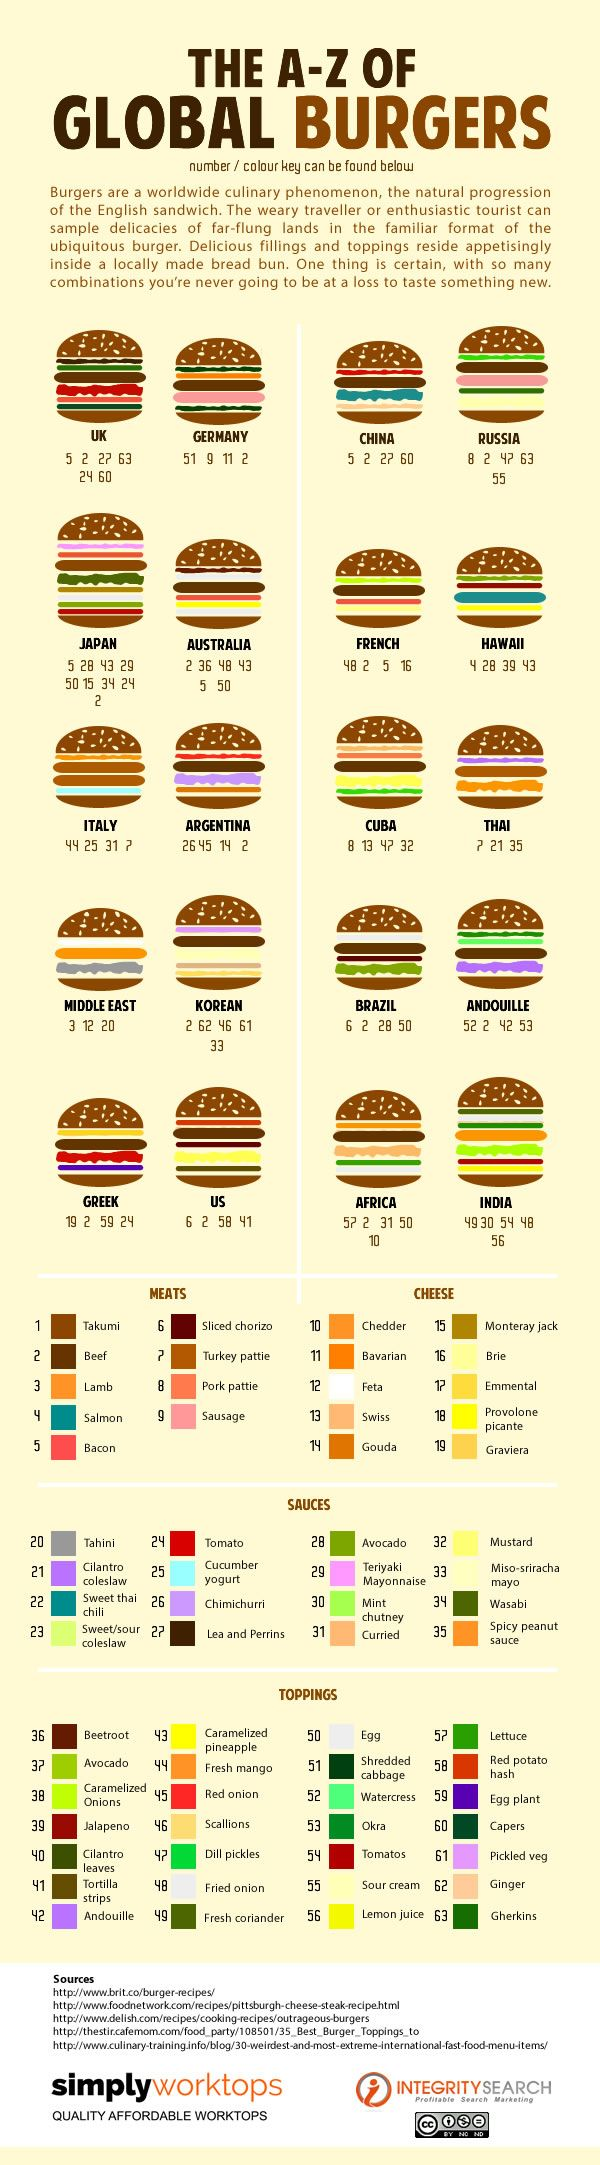 The A-Z Of Global Burgers